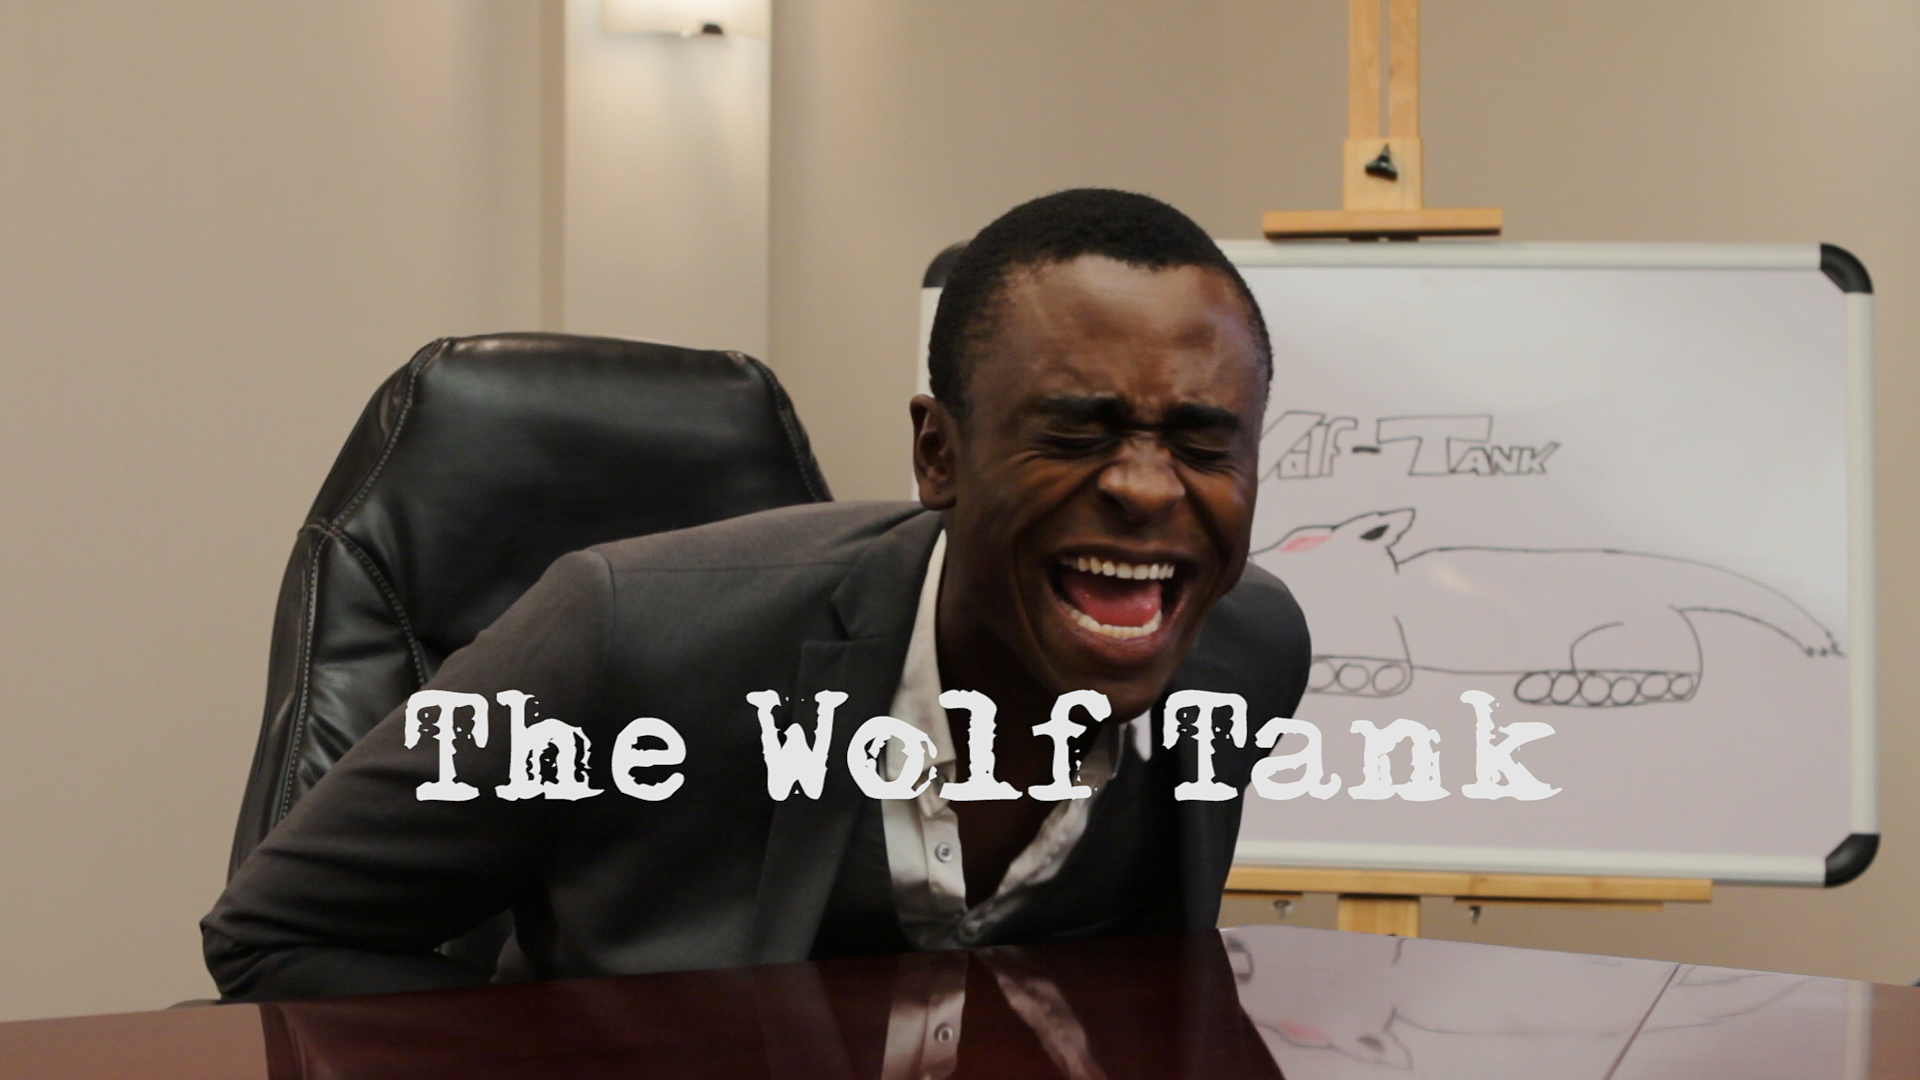 THE WOLF TANK SONG!